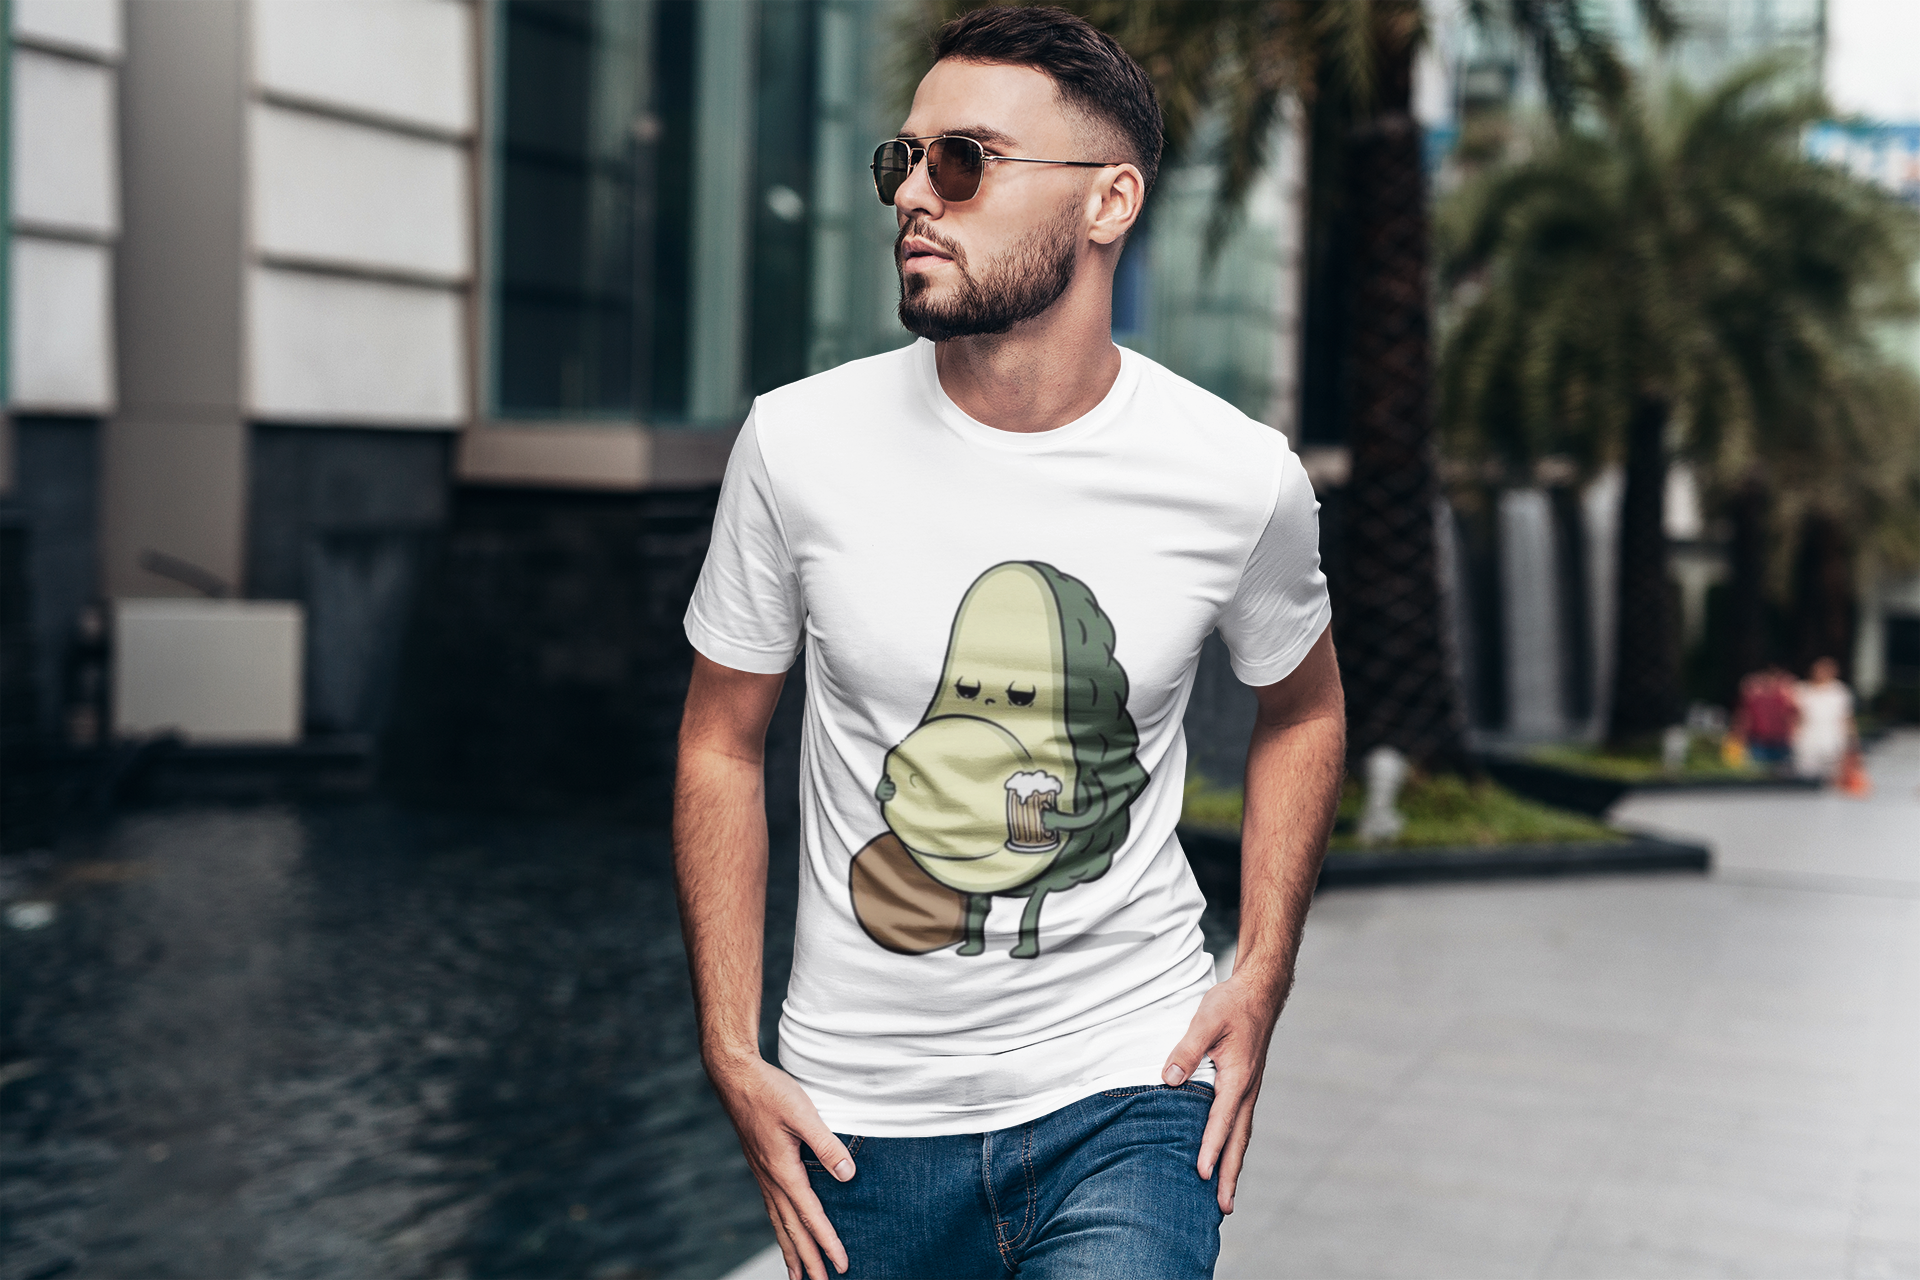 Funny Avocado Beer Belly T-Shirt